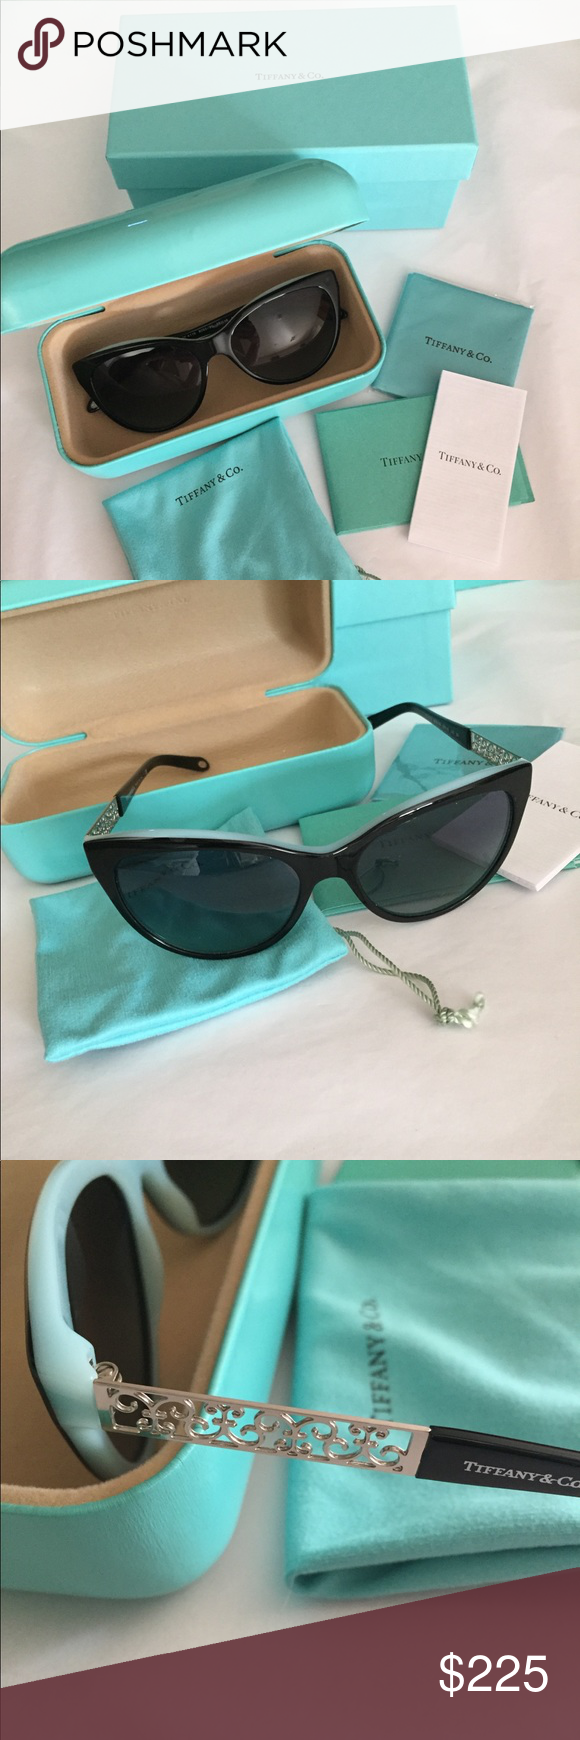 5df3271b57b Tiffany   Co. Enchant Cat Eye Sunglasses Authentic Tiffany   Co. Enchant  Cat Eye Sunglasses. These are in new condition and include everything  pictured.